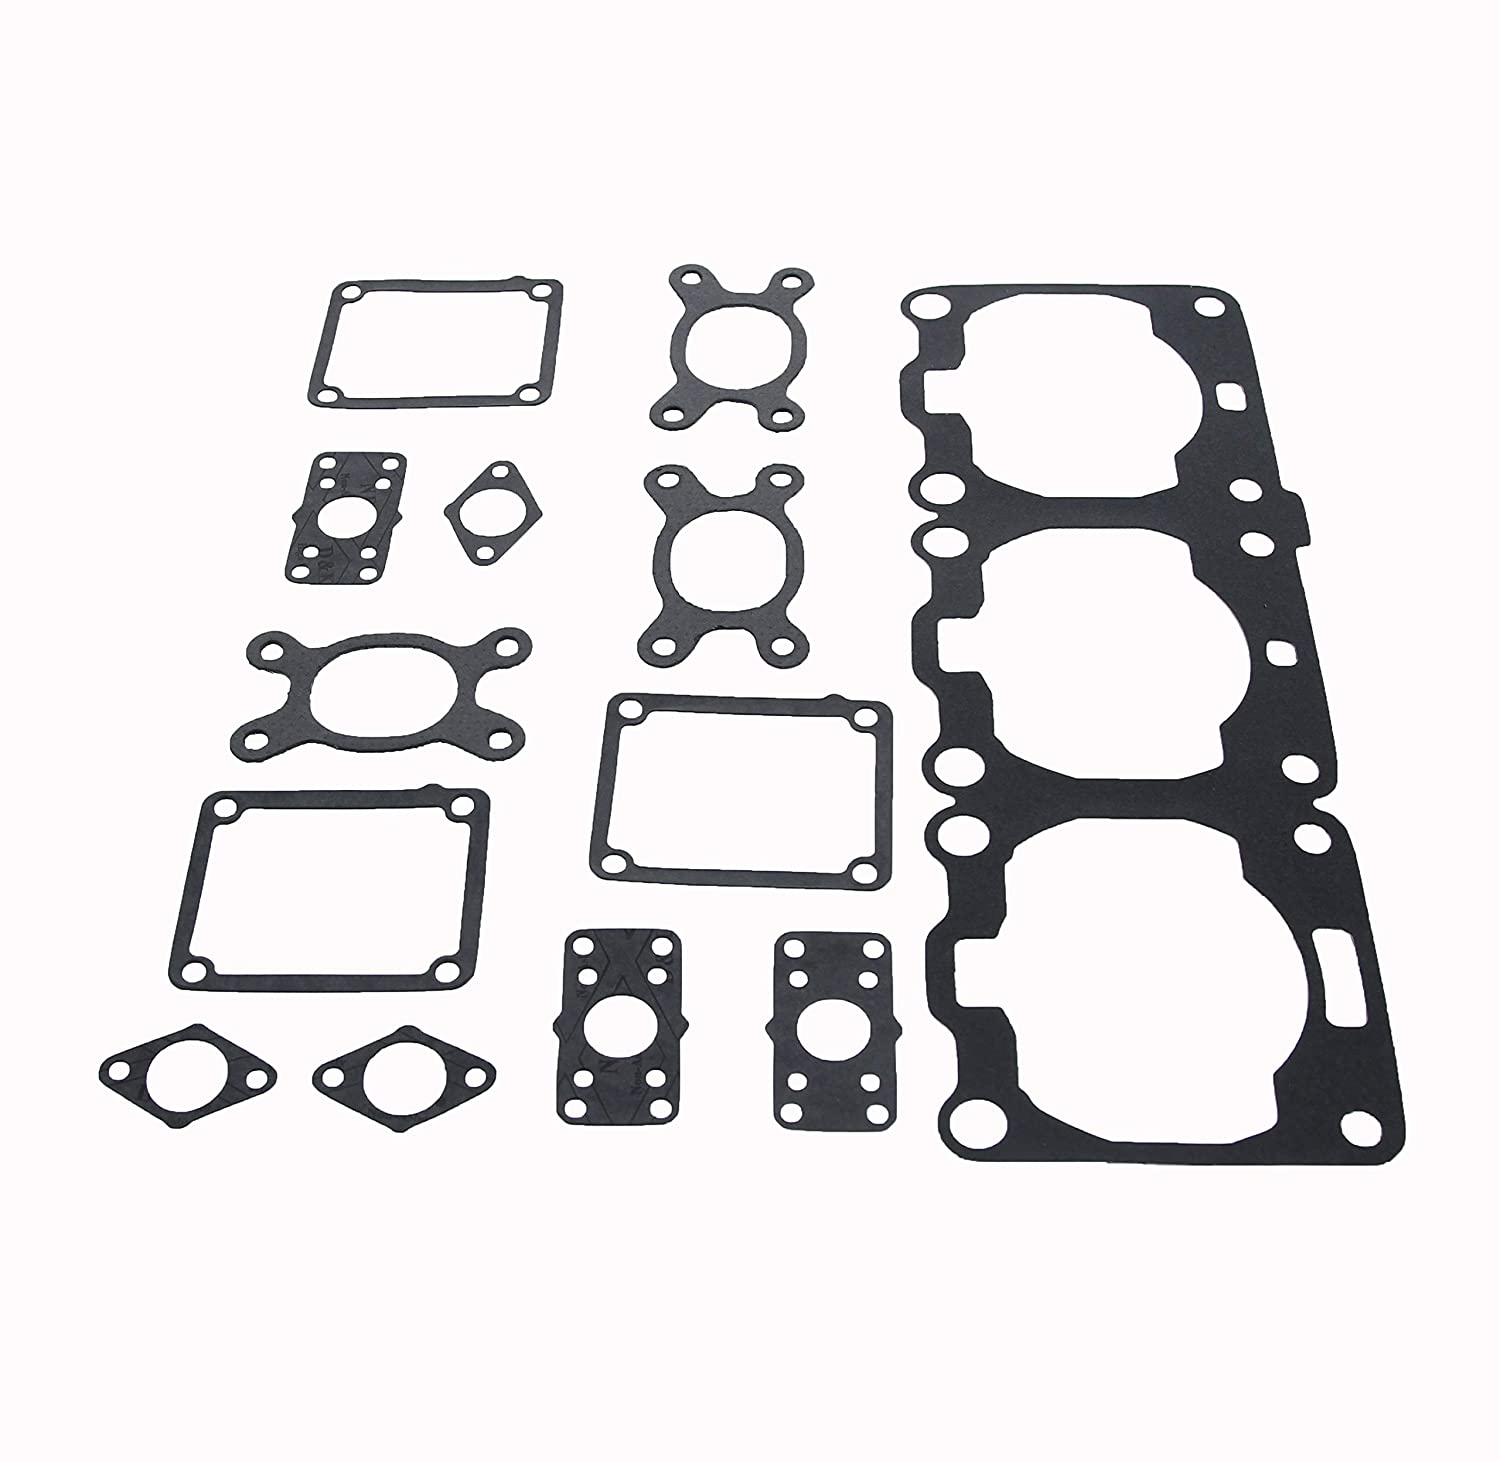 Complete Gasket Kit fits Yamaha SX Viper 700 SXV700 2002 2003 by Race-Driven